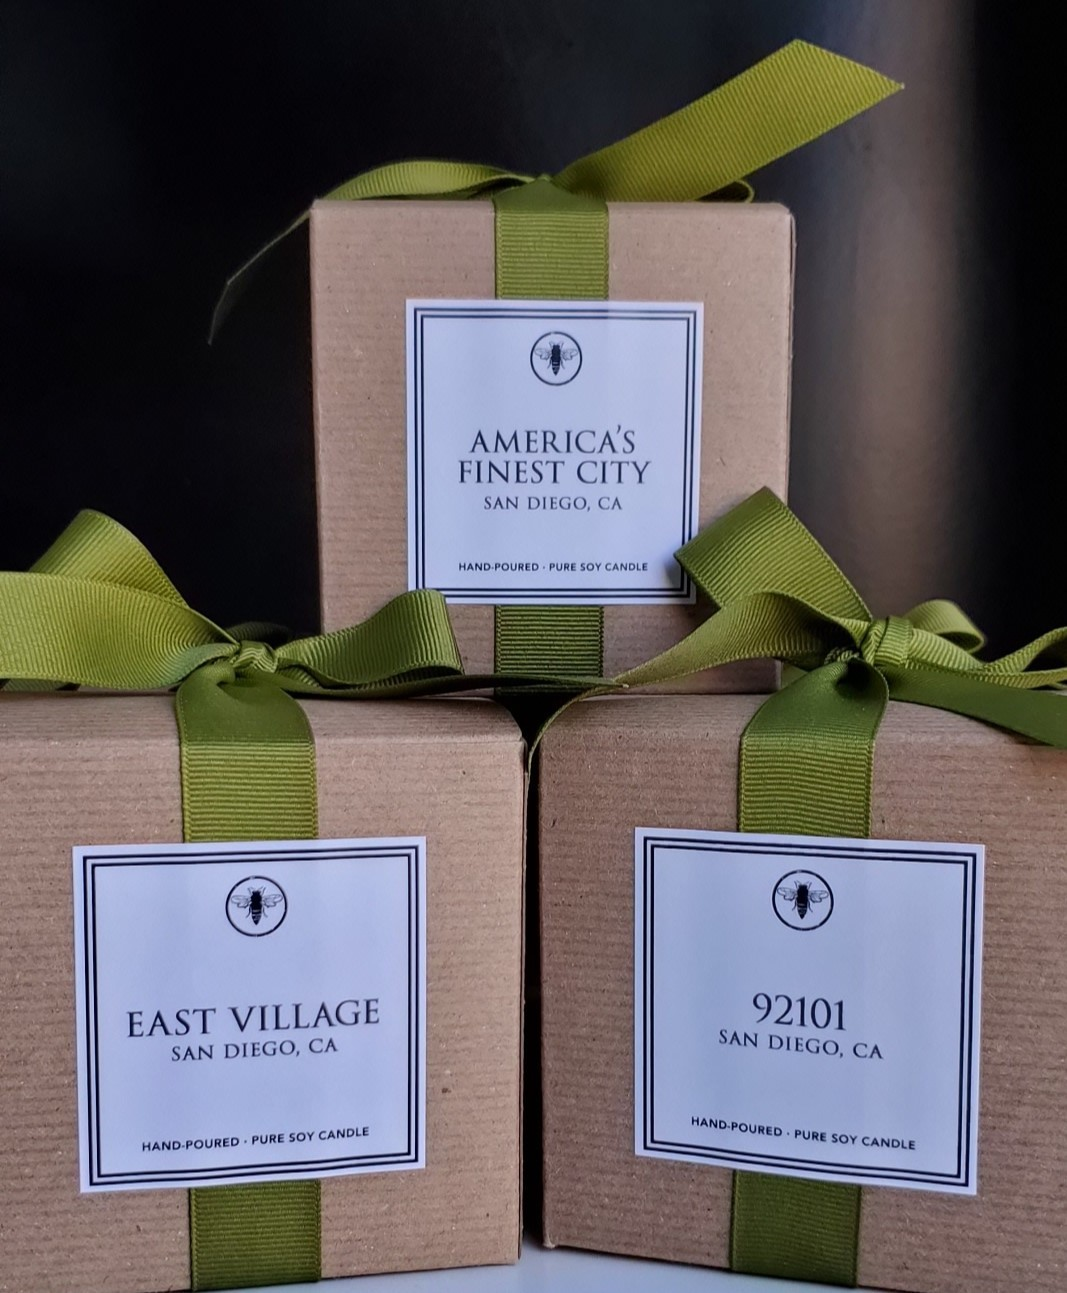 92101, East Village Candles by Altered Decor